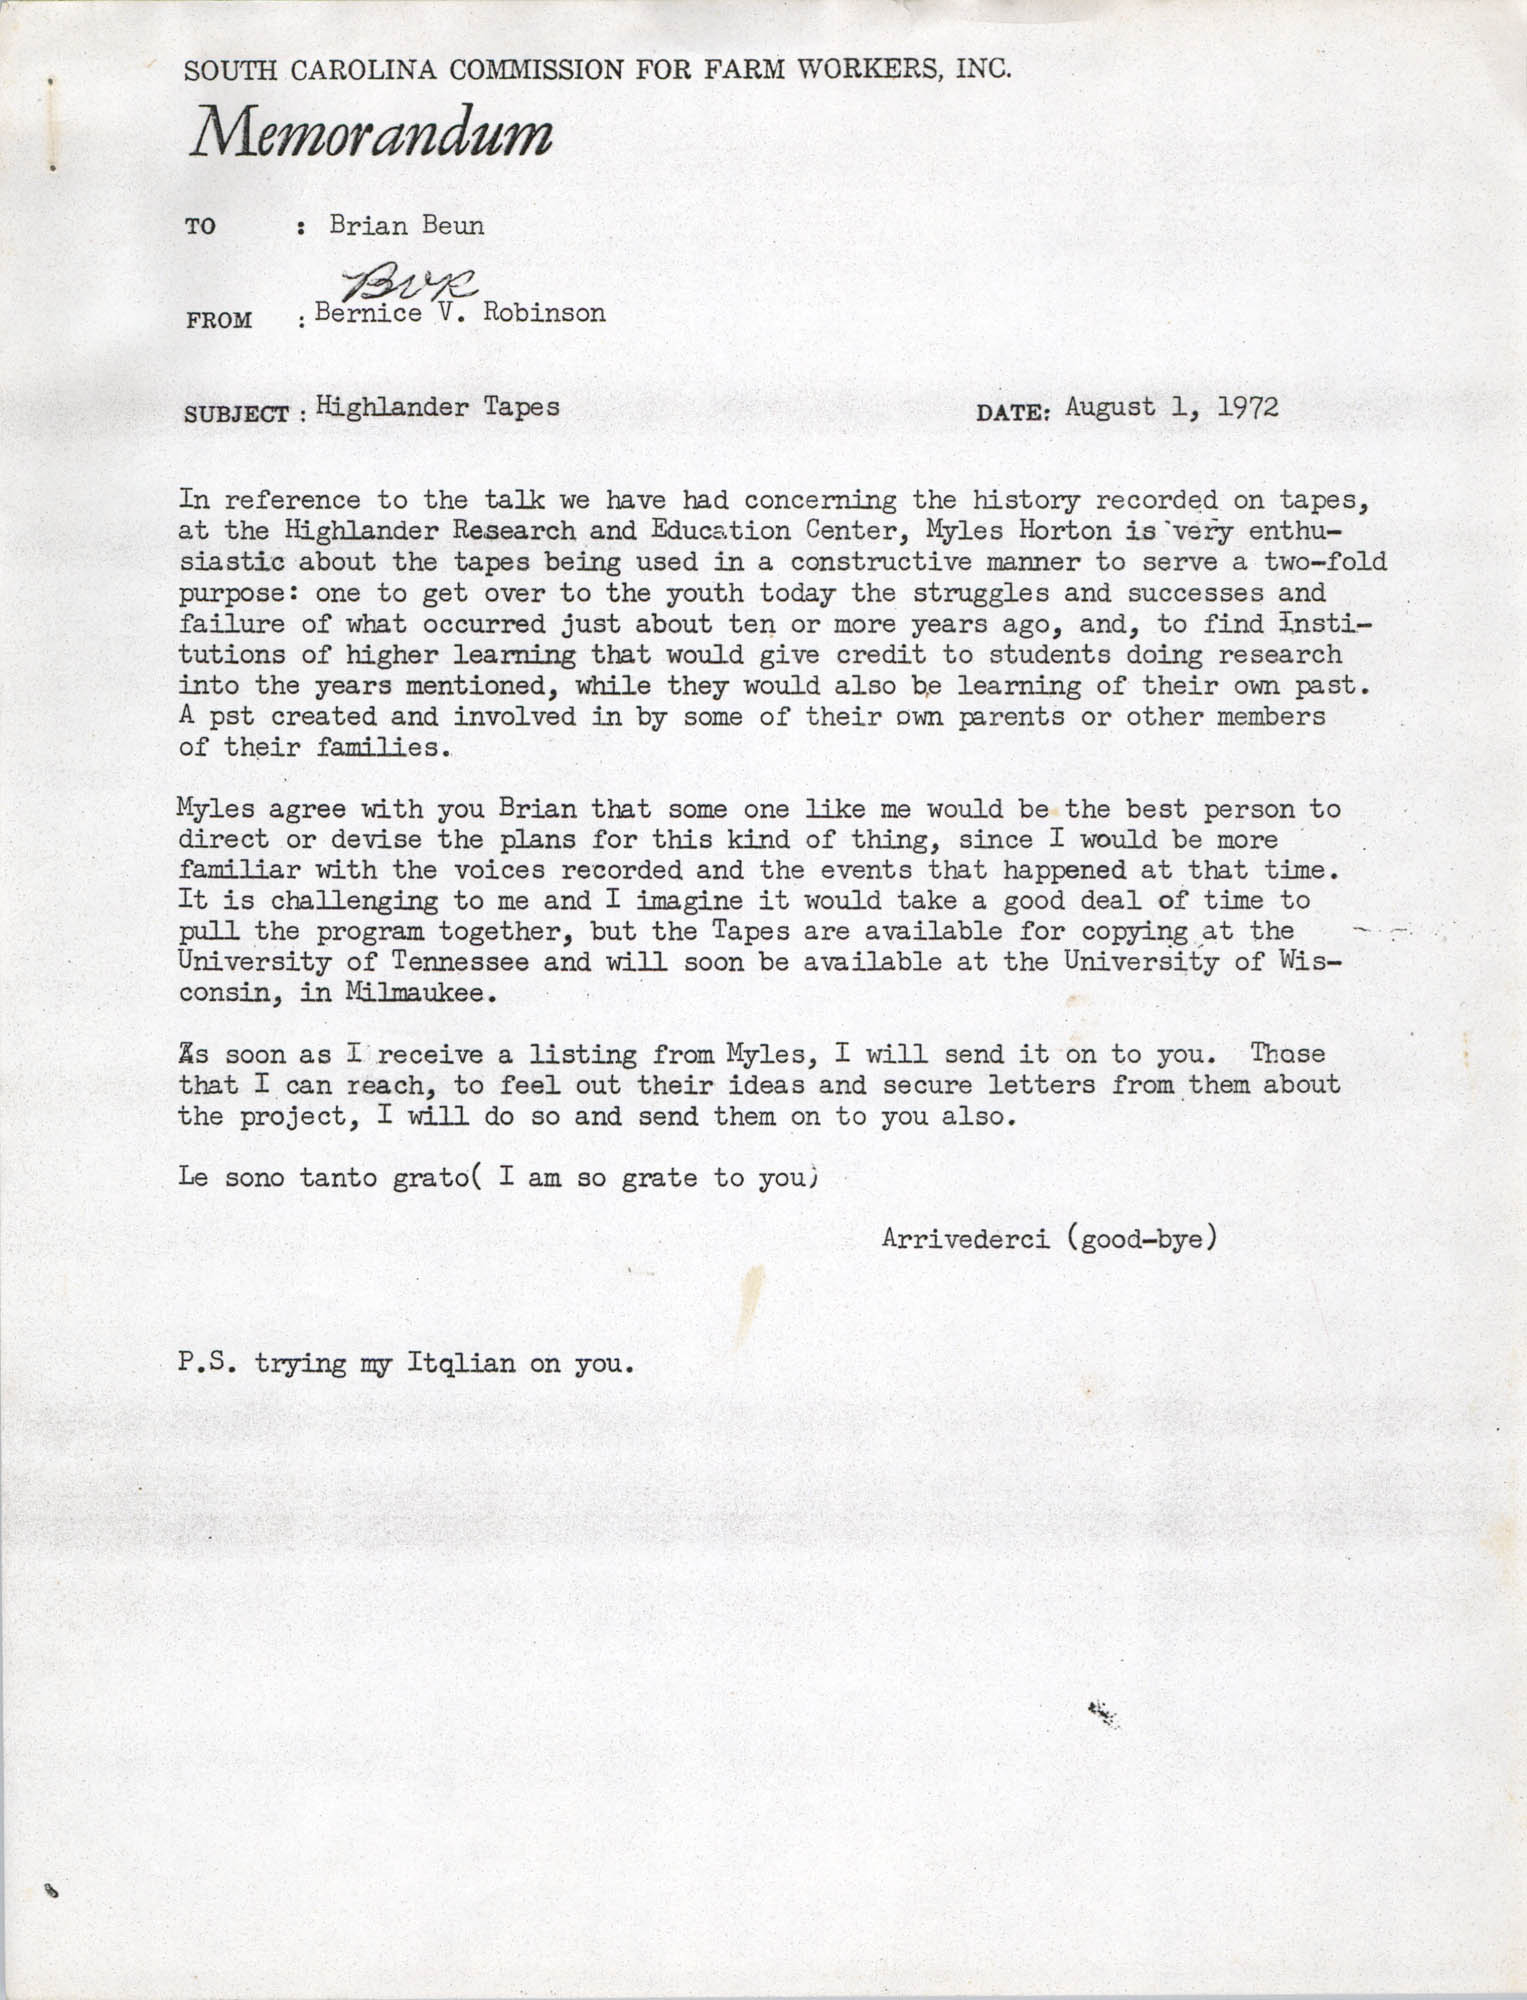 Memorandum from Bernice V. Robinson to Brian Beun, August 1, 1972